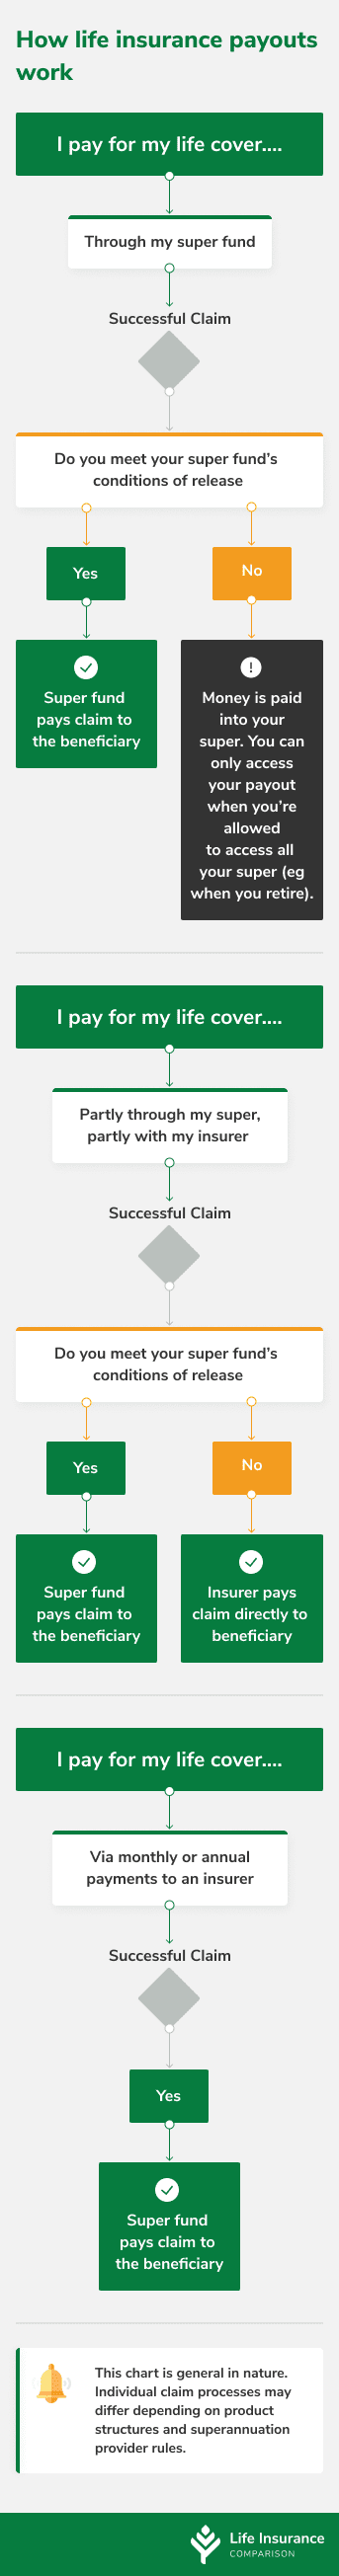 Flow chart explaining how life insurance payouts differ between life cover in superannuation and life cover held outside of super